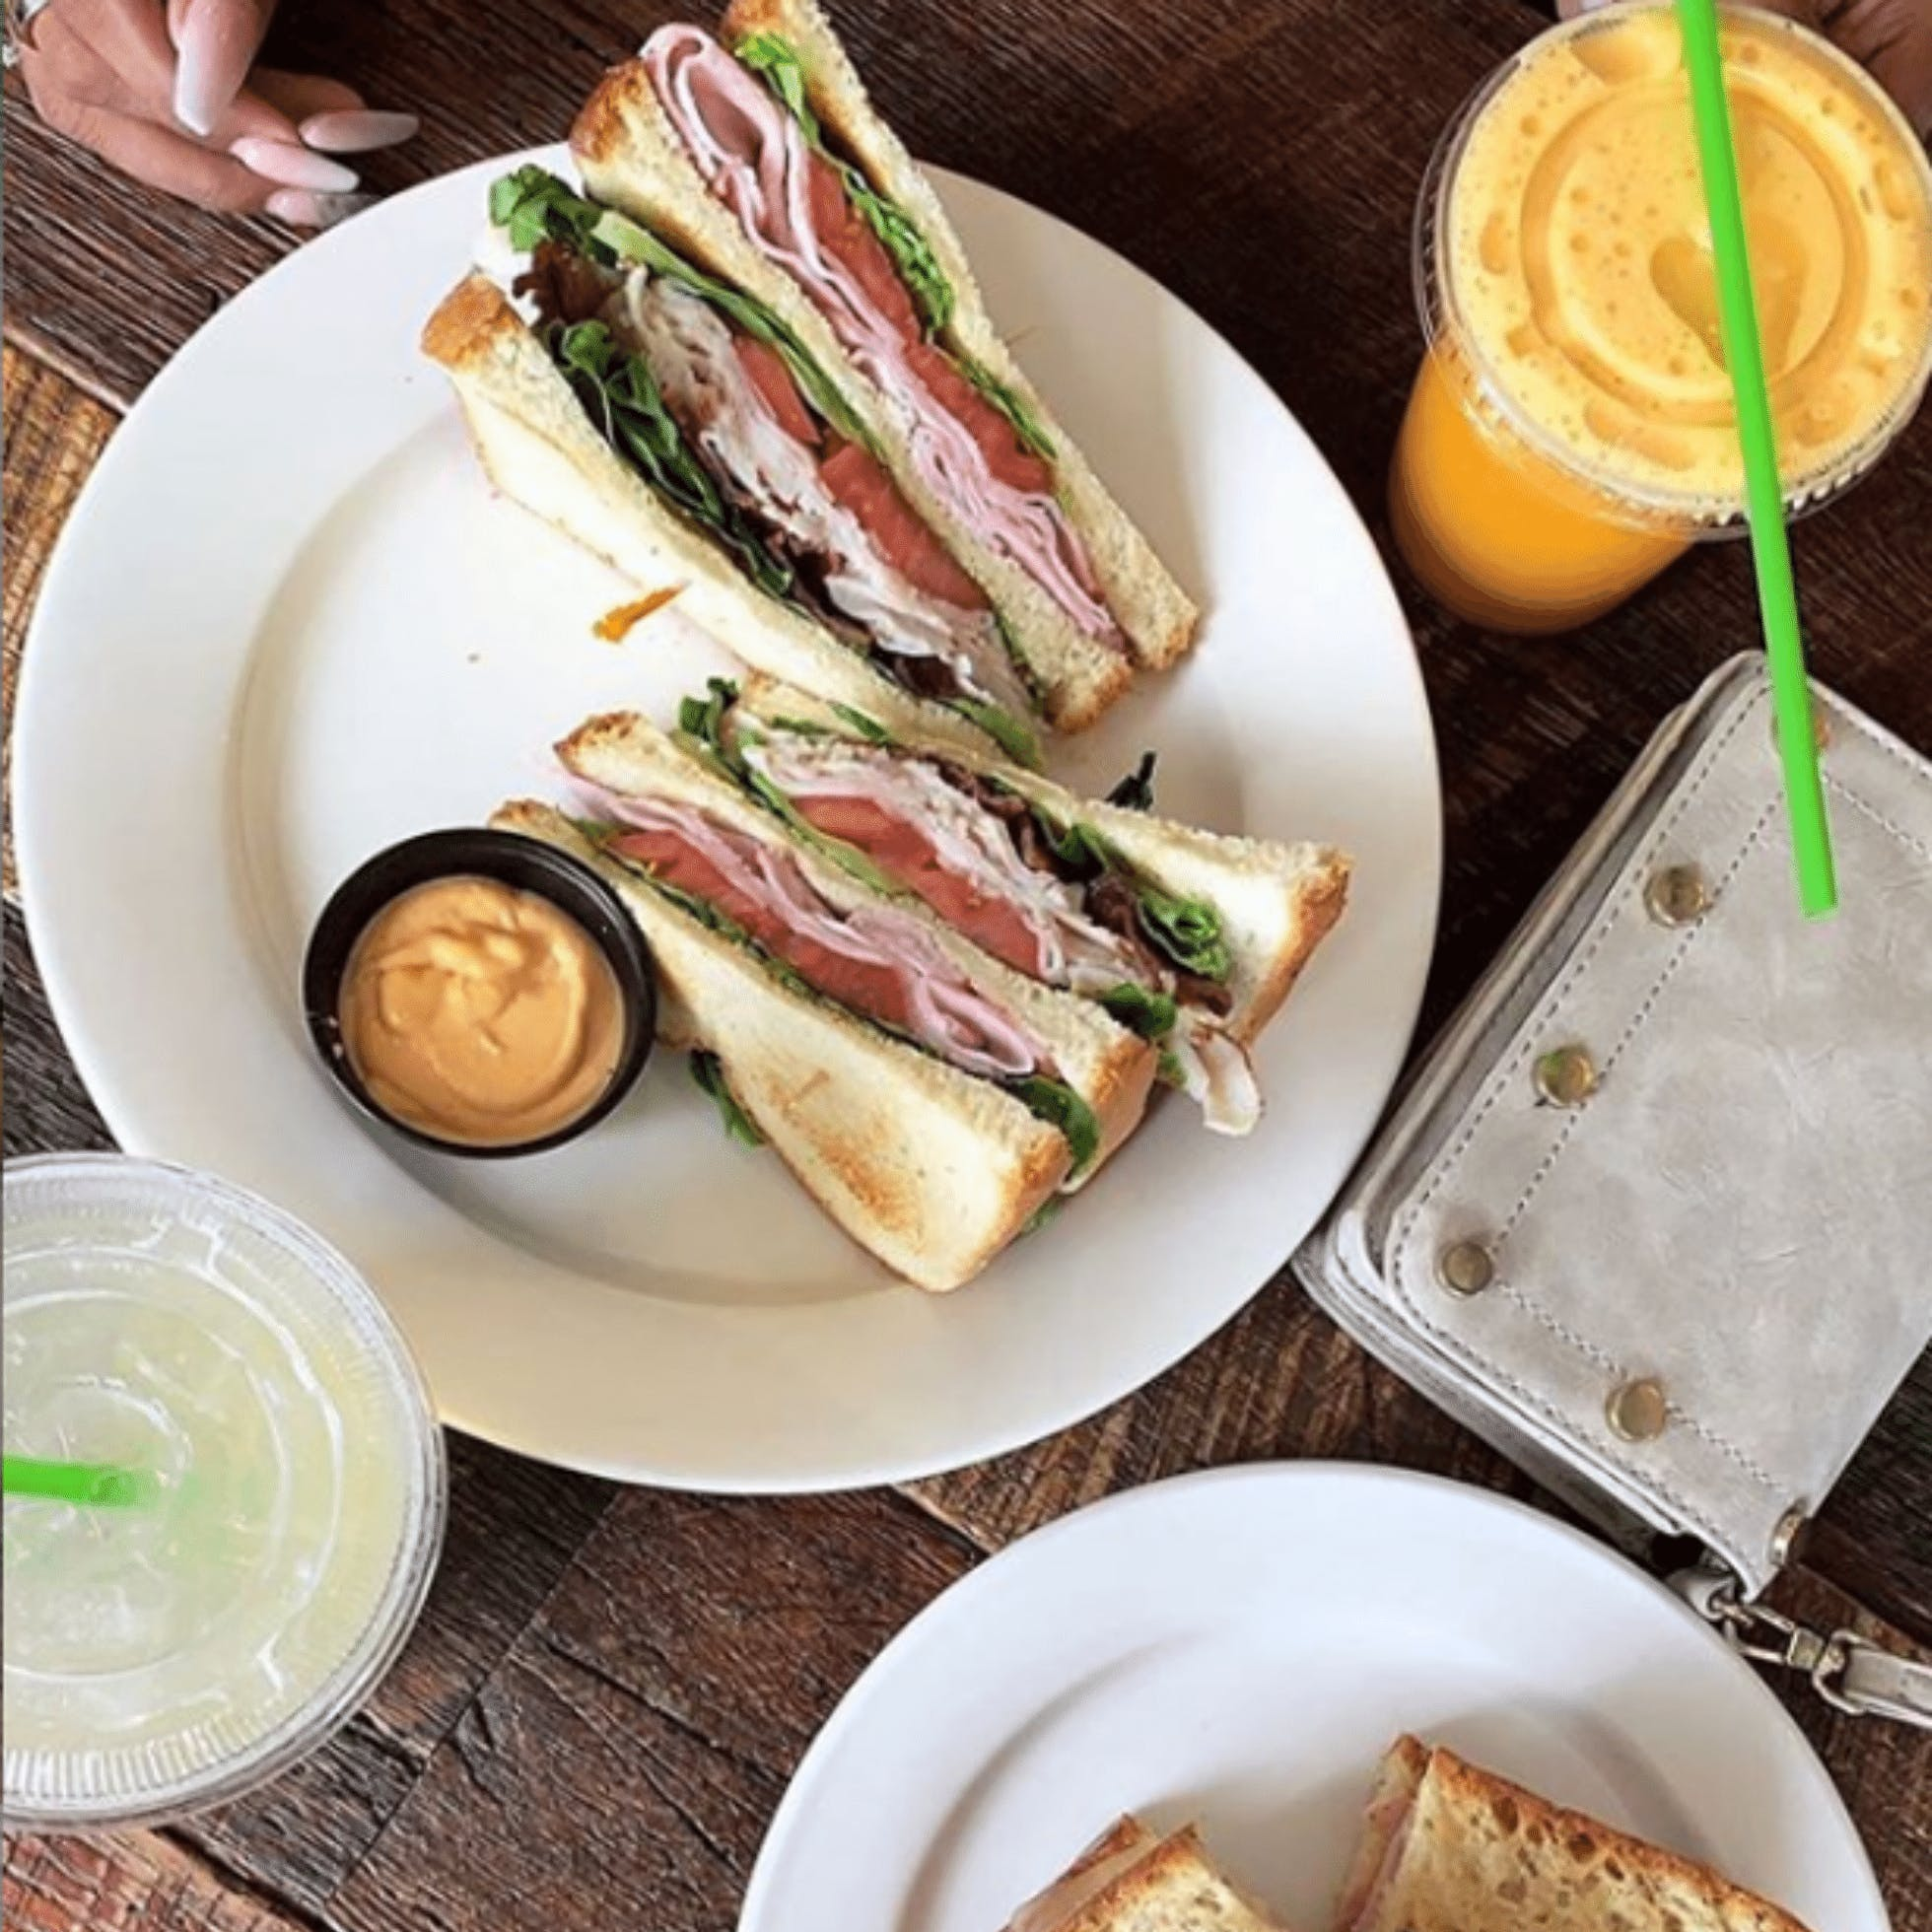 Sandwich and smoothie from Brewer's Cafe in Richmond VA